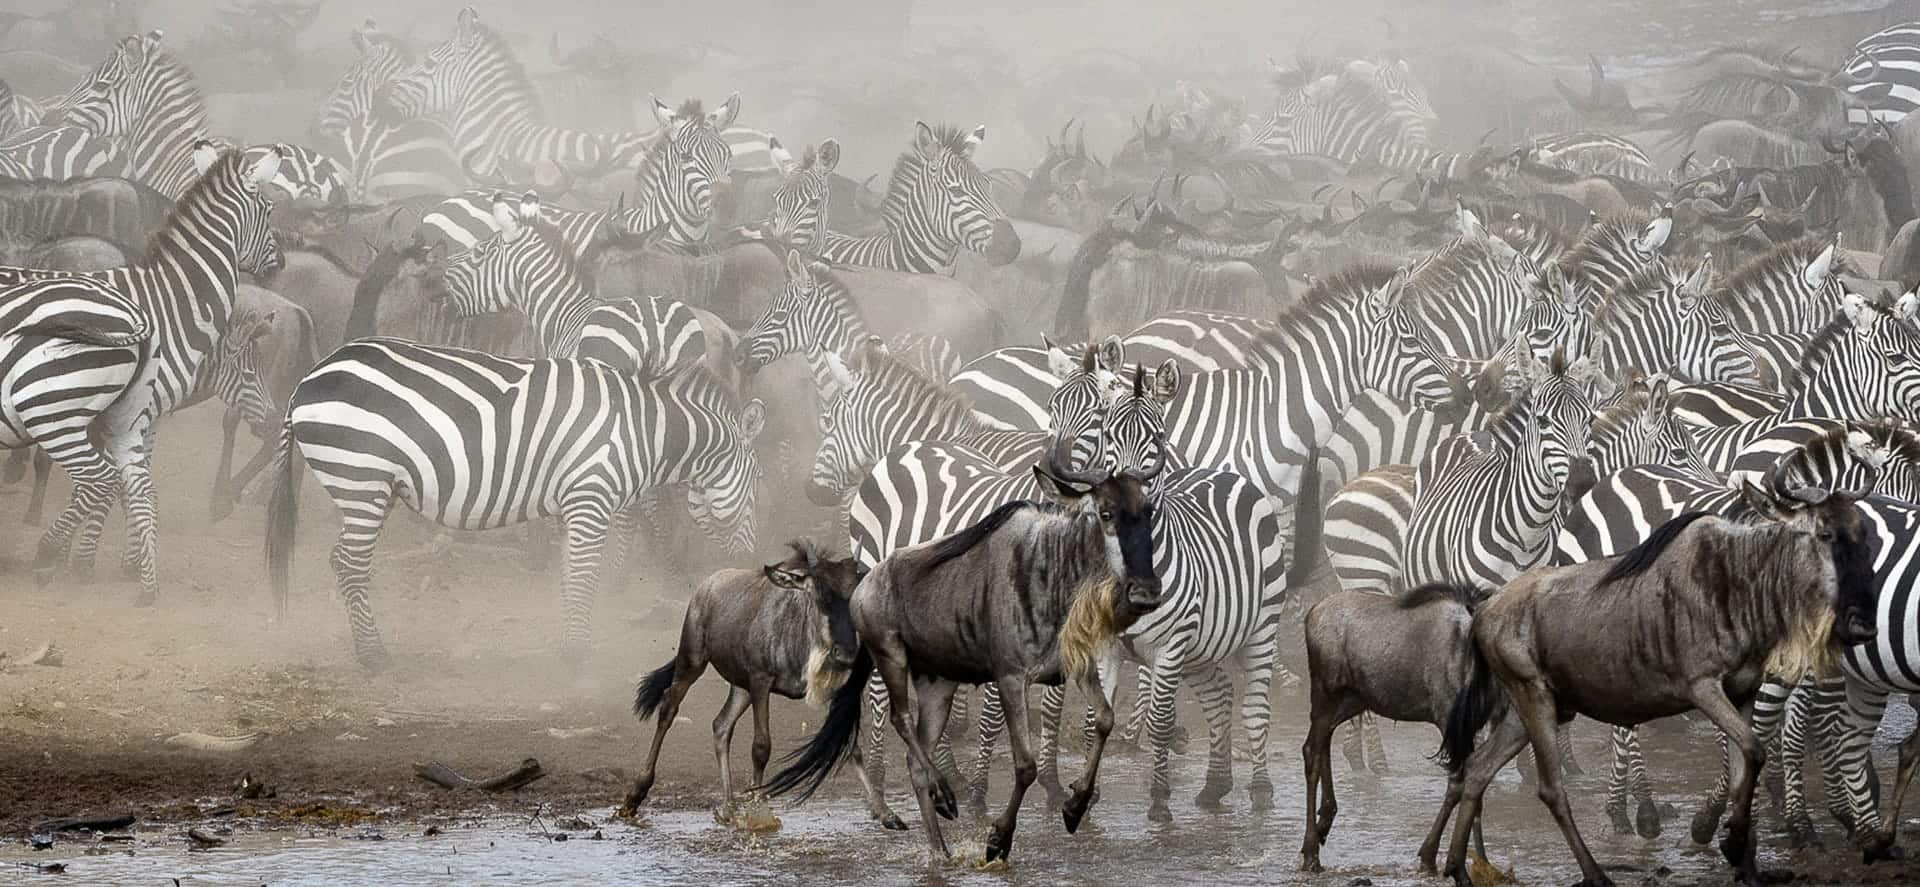 Wildebeest Mara Migration 2020